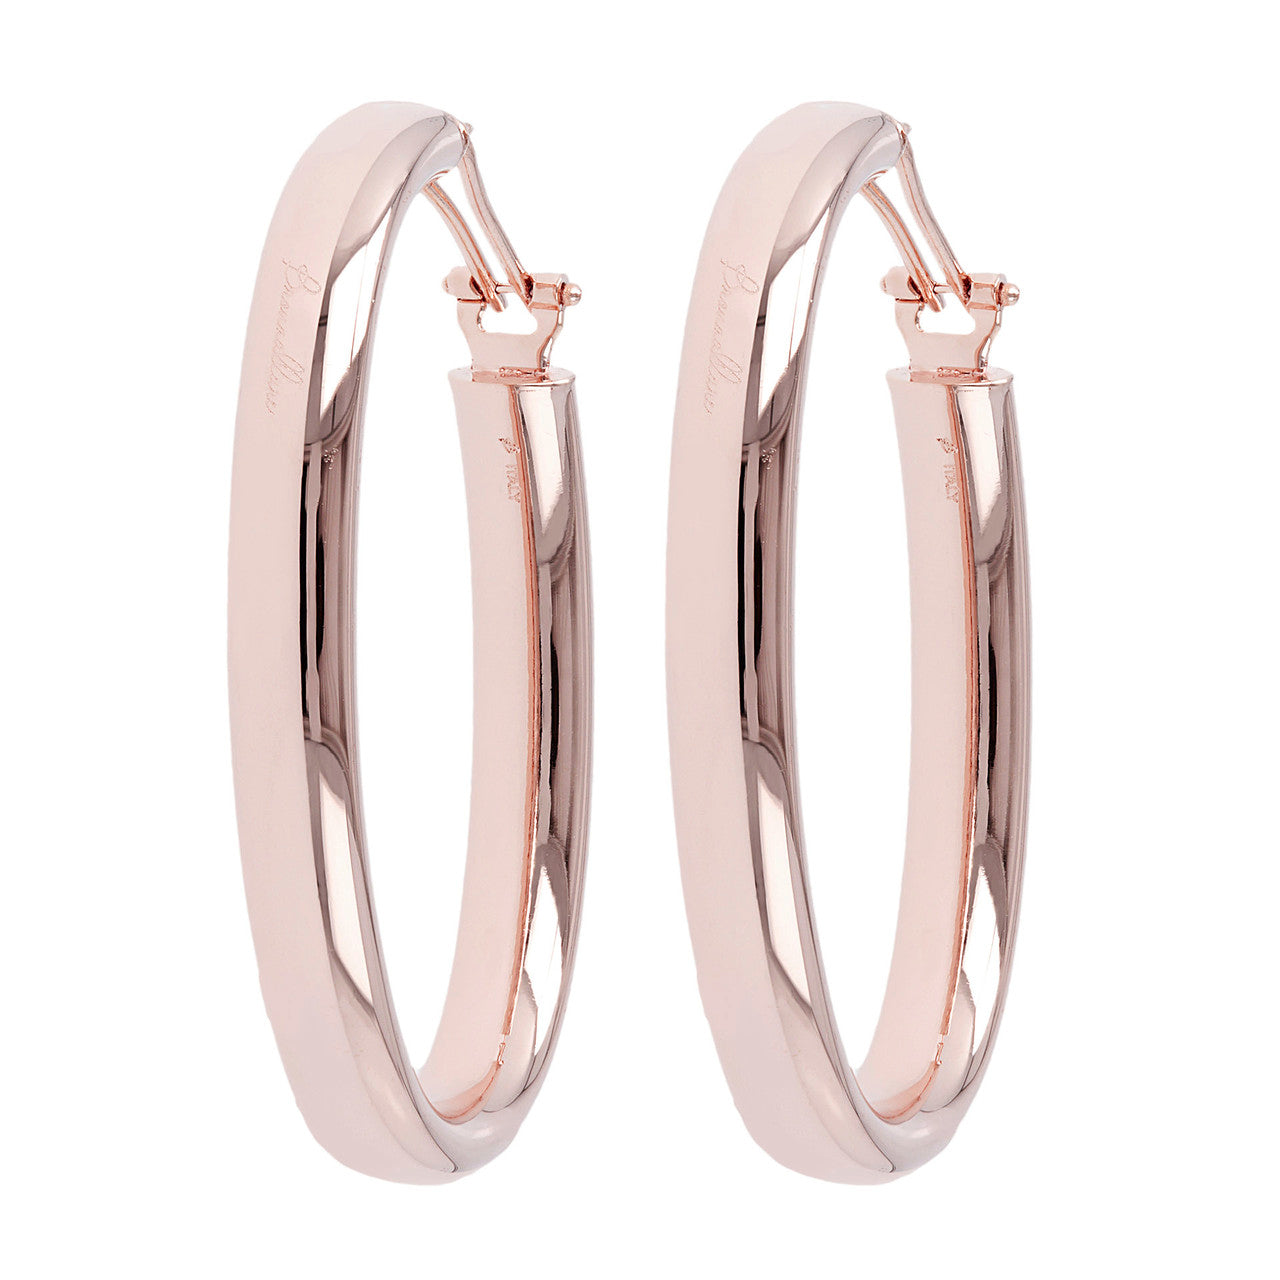 Oval hoop earrings 7fd2142a9d380